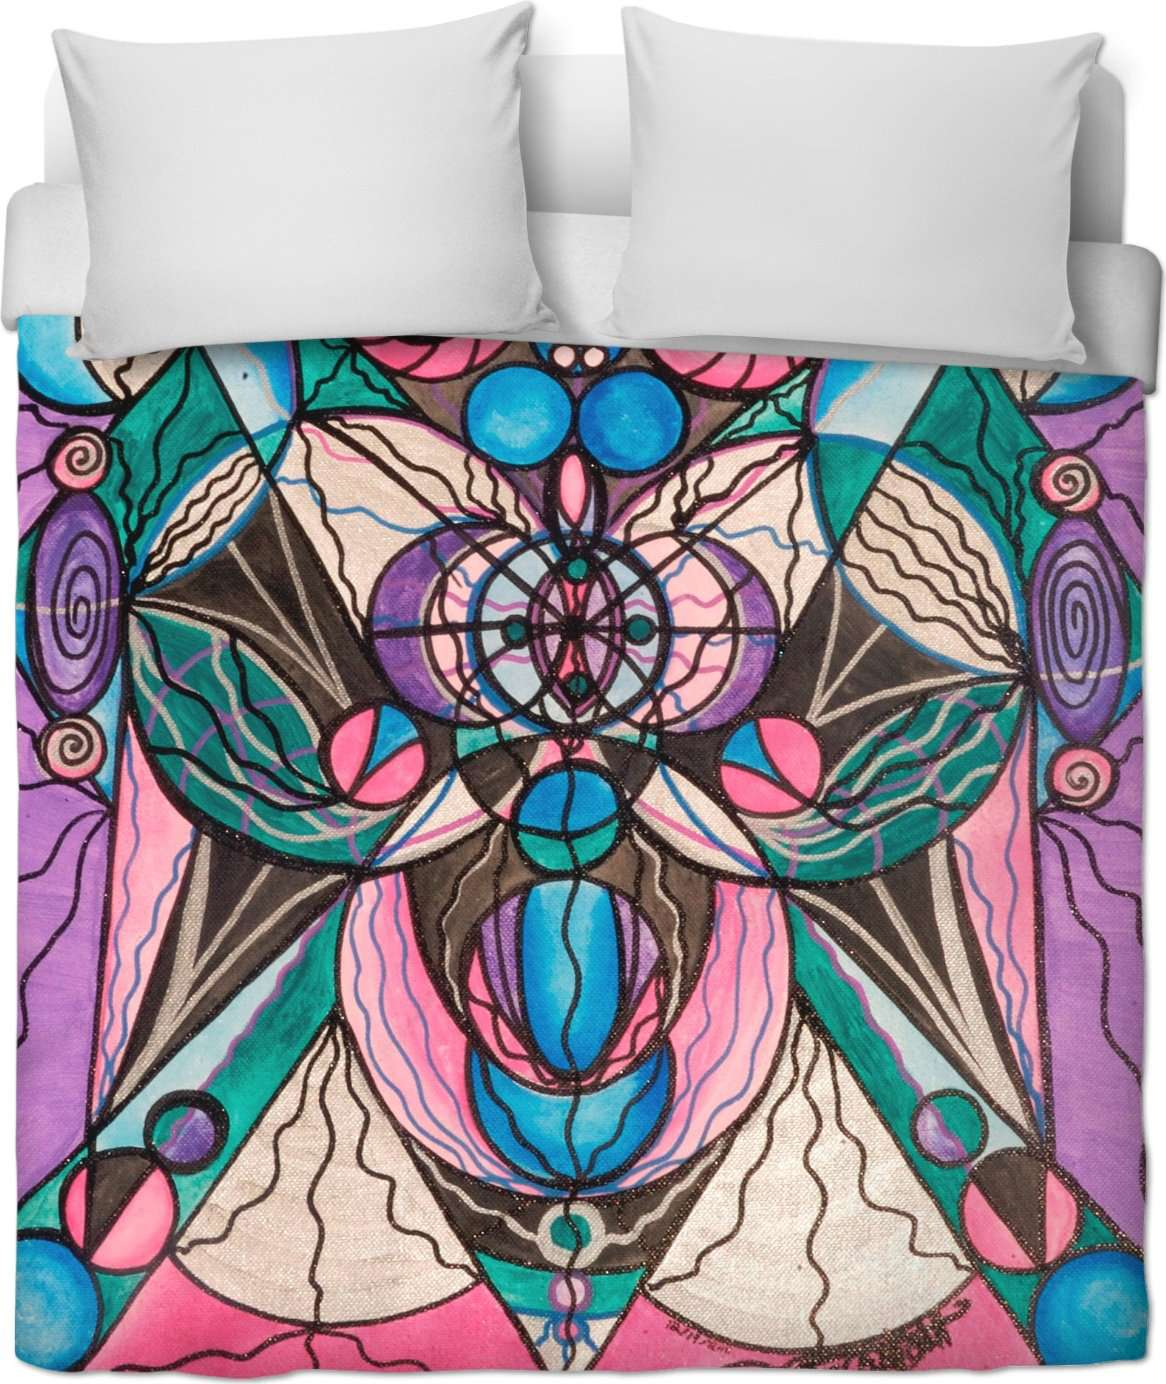 Arcturian Healing Lattice - Duvet Cover